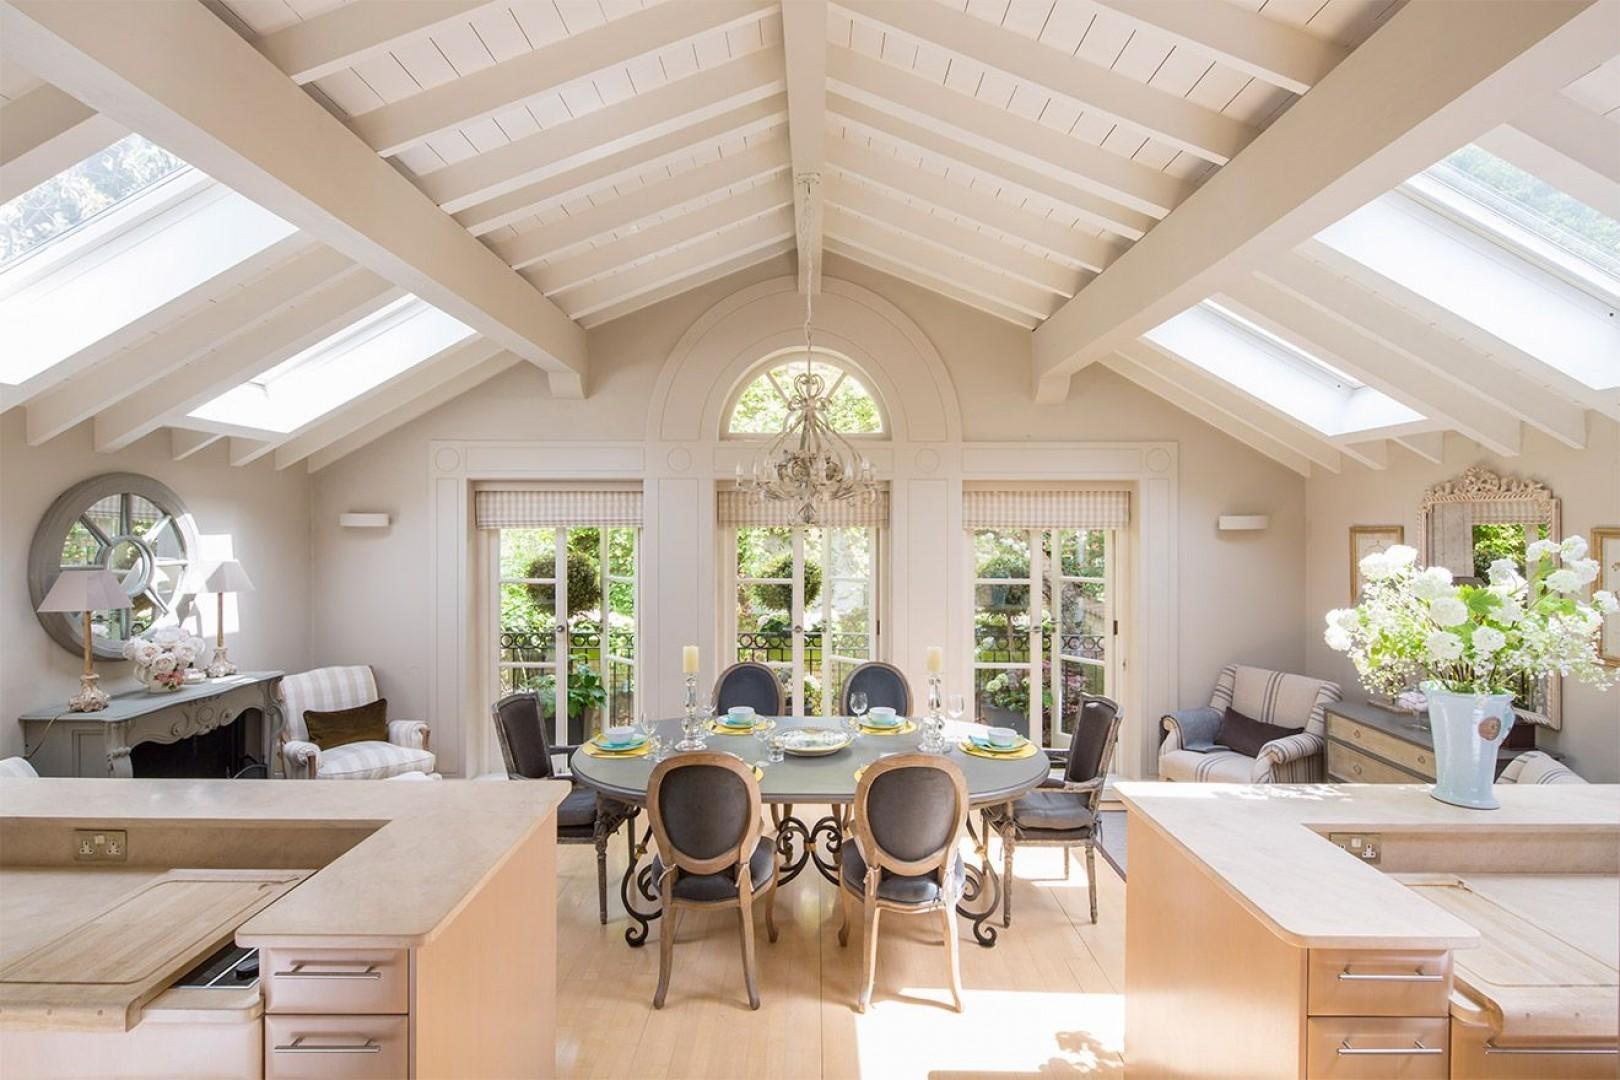 Spacious dining room and kitchen with large windows overlooking the vibrant terrace